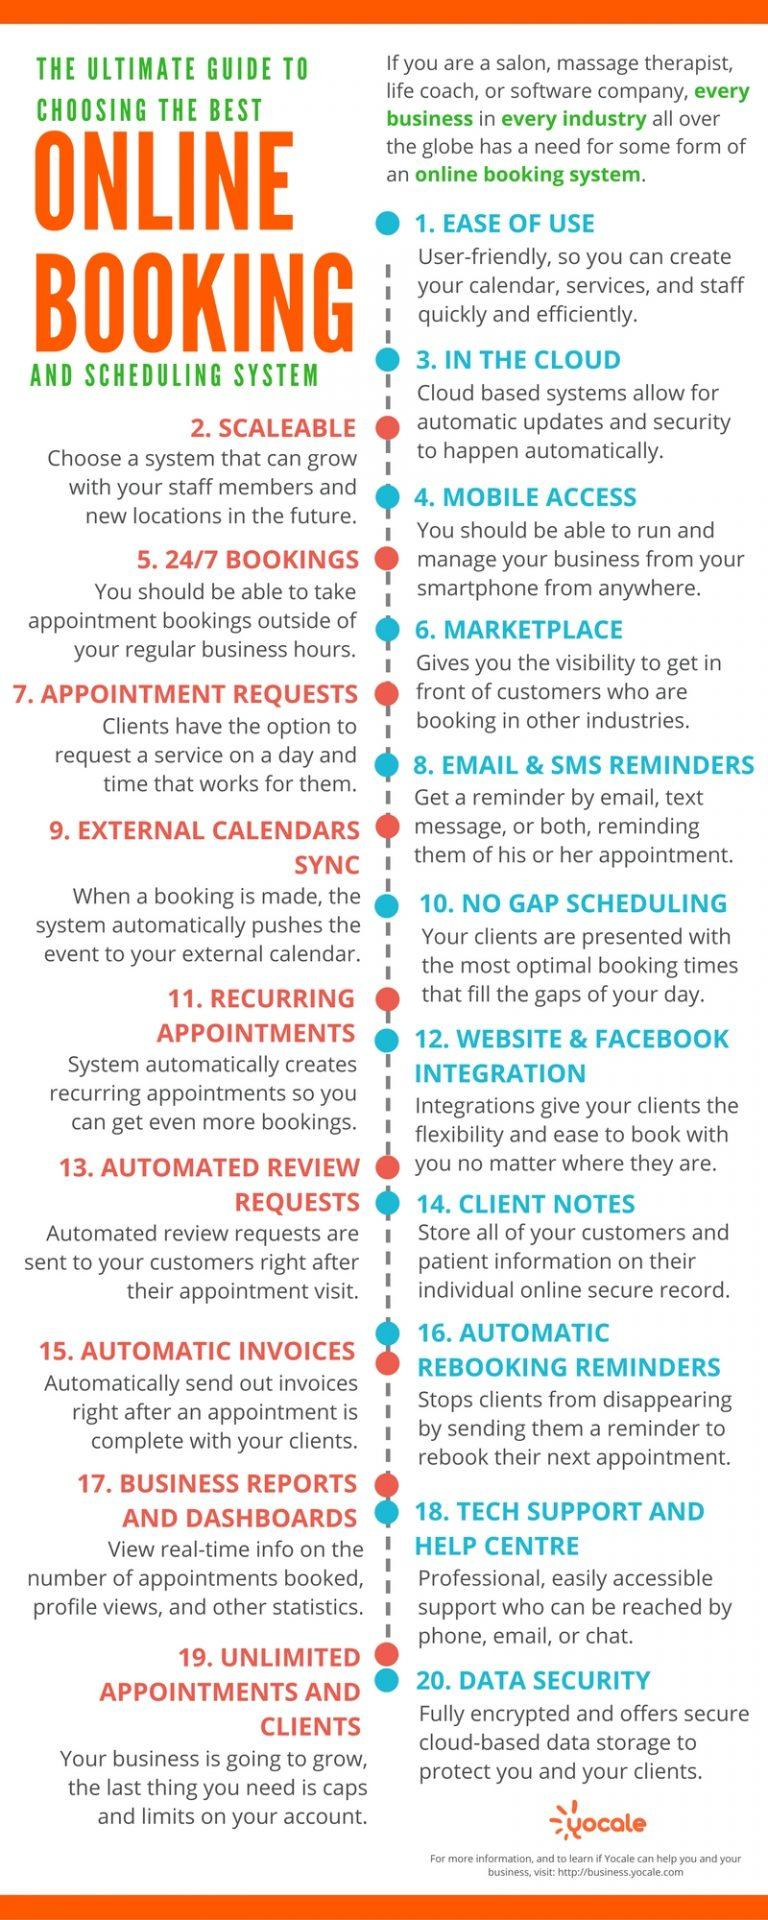 Infographic: Ultimate Guide To Choosing The Best Online Booking And Scheduling System